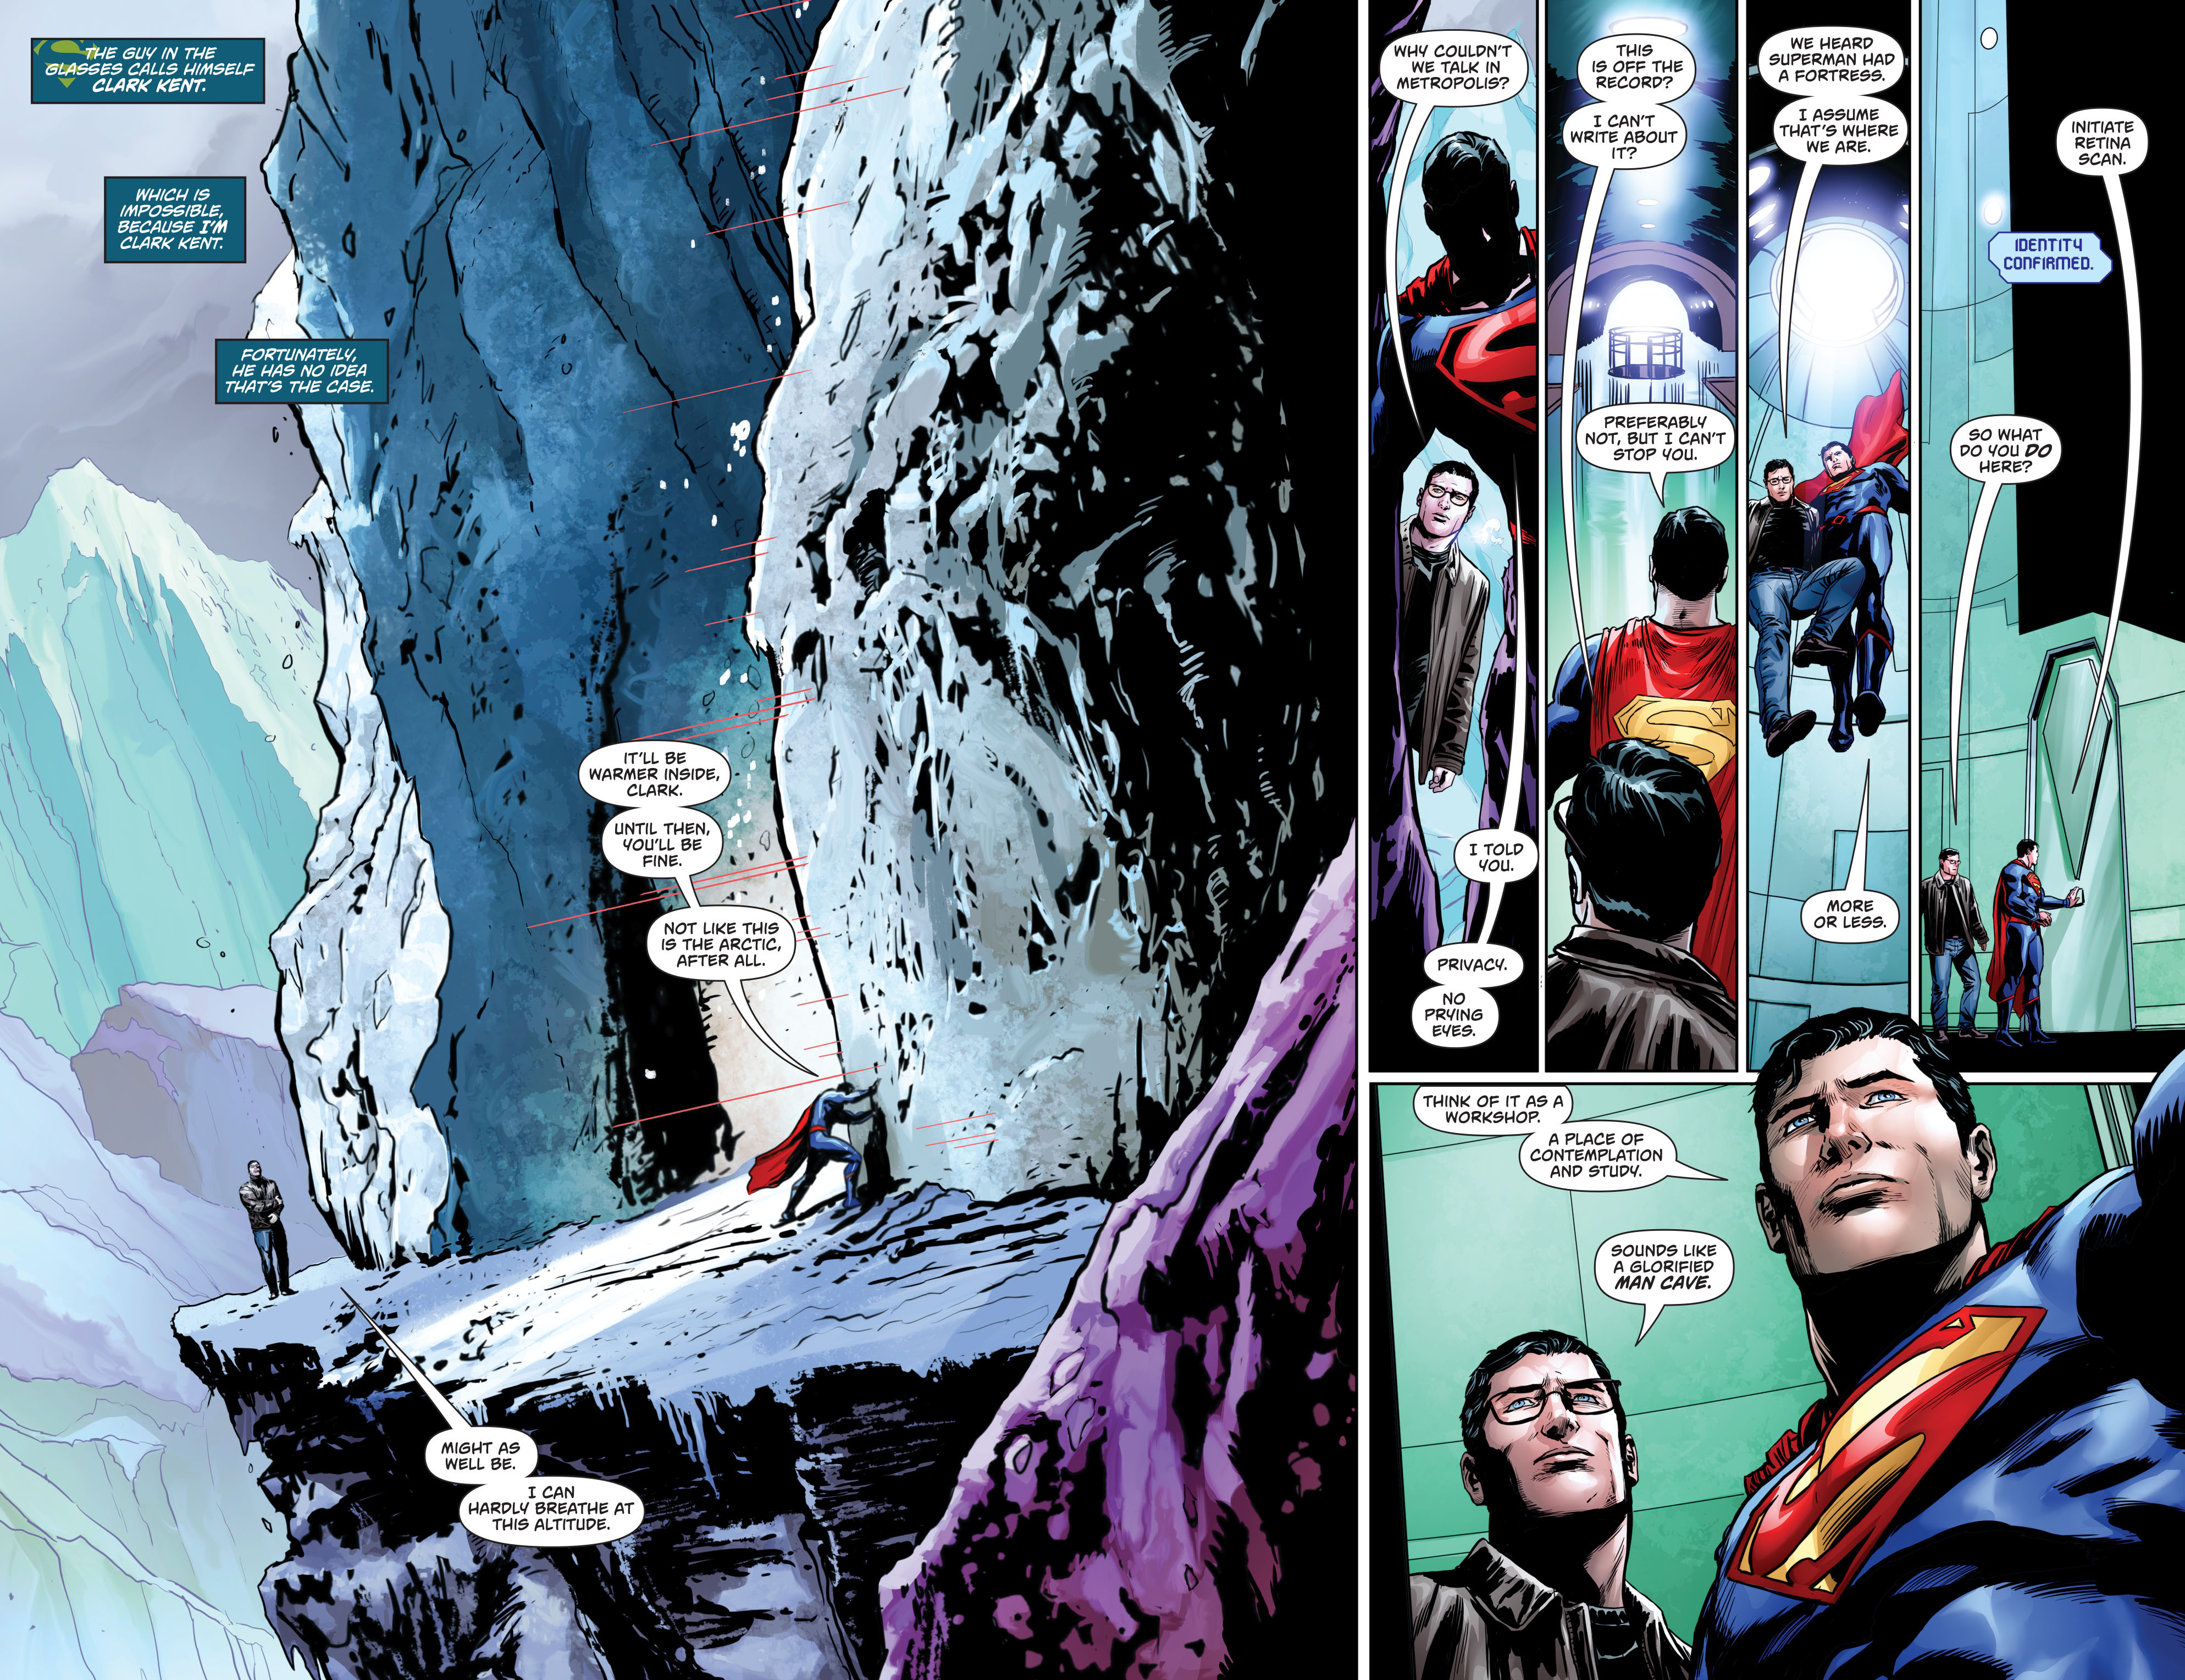 Read online Action Comics (2016) comic -  Issue #964 - 5